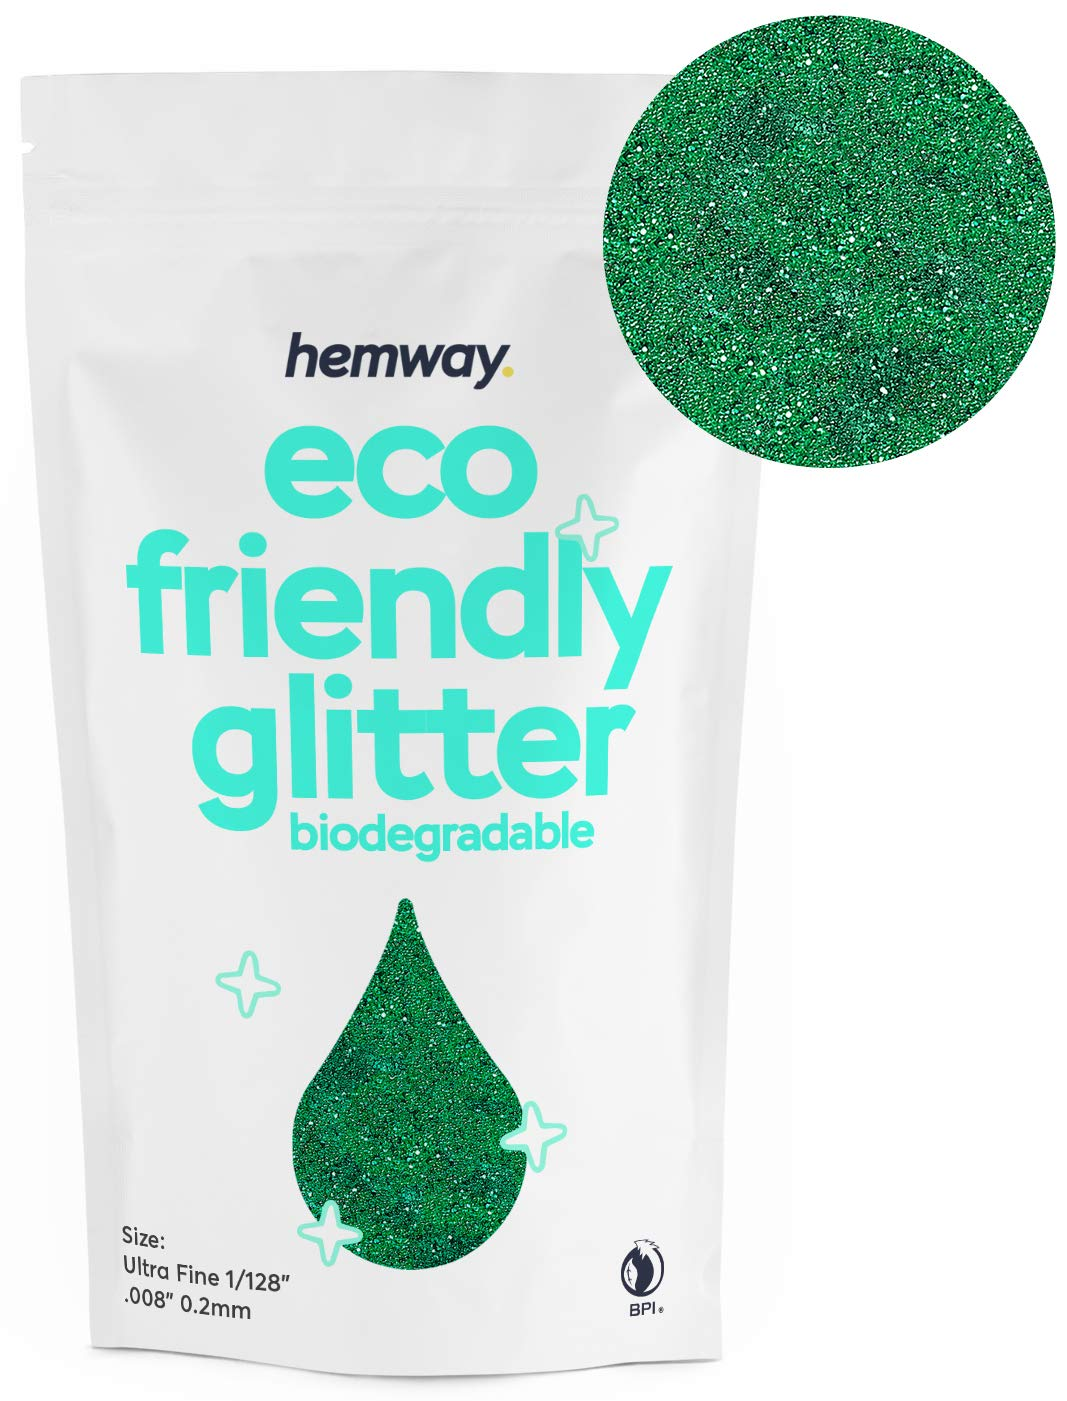 """Hemway Eco Friendly Biodegradable Glitter 100g / 3.5oz Bio Cosmetic Safe Sparkle Vegan for Face, Eyeshadow, Body, Hair, Nail and Festival Makeup, Craft - 1/128"""" 0.008"""" 0.2mm - Emerald Green"""